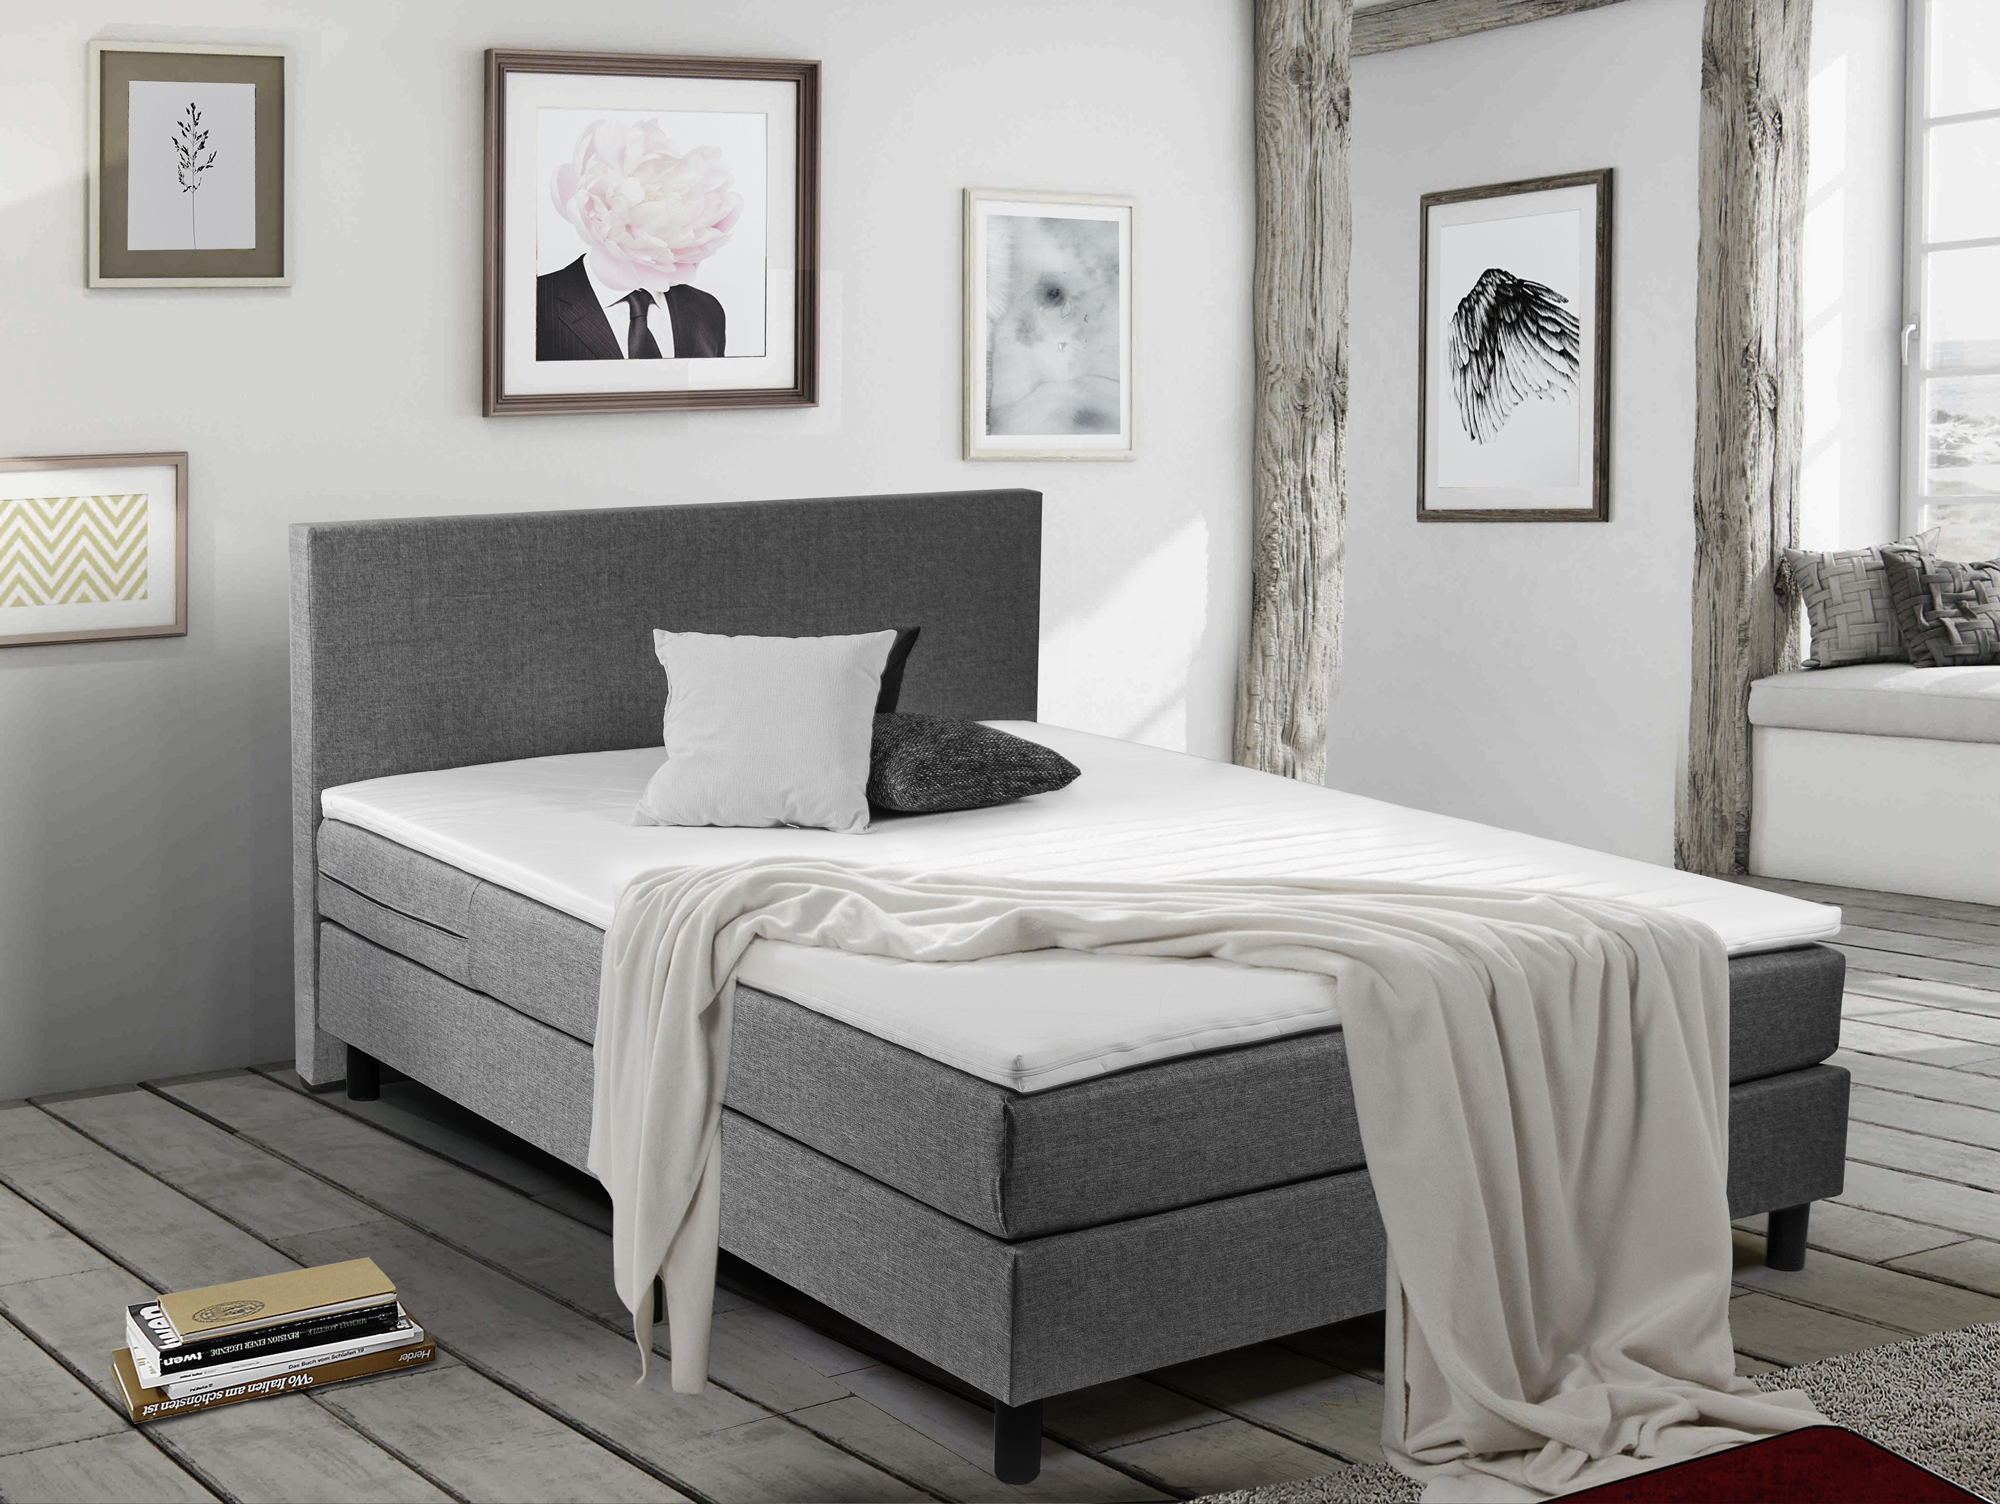 balu boxspringbett polsterbett 140 x 200 cm grau. Black Bedroom Furniture Sets. Home Design Ideas